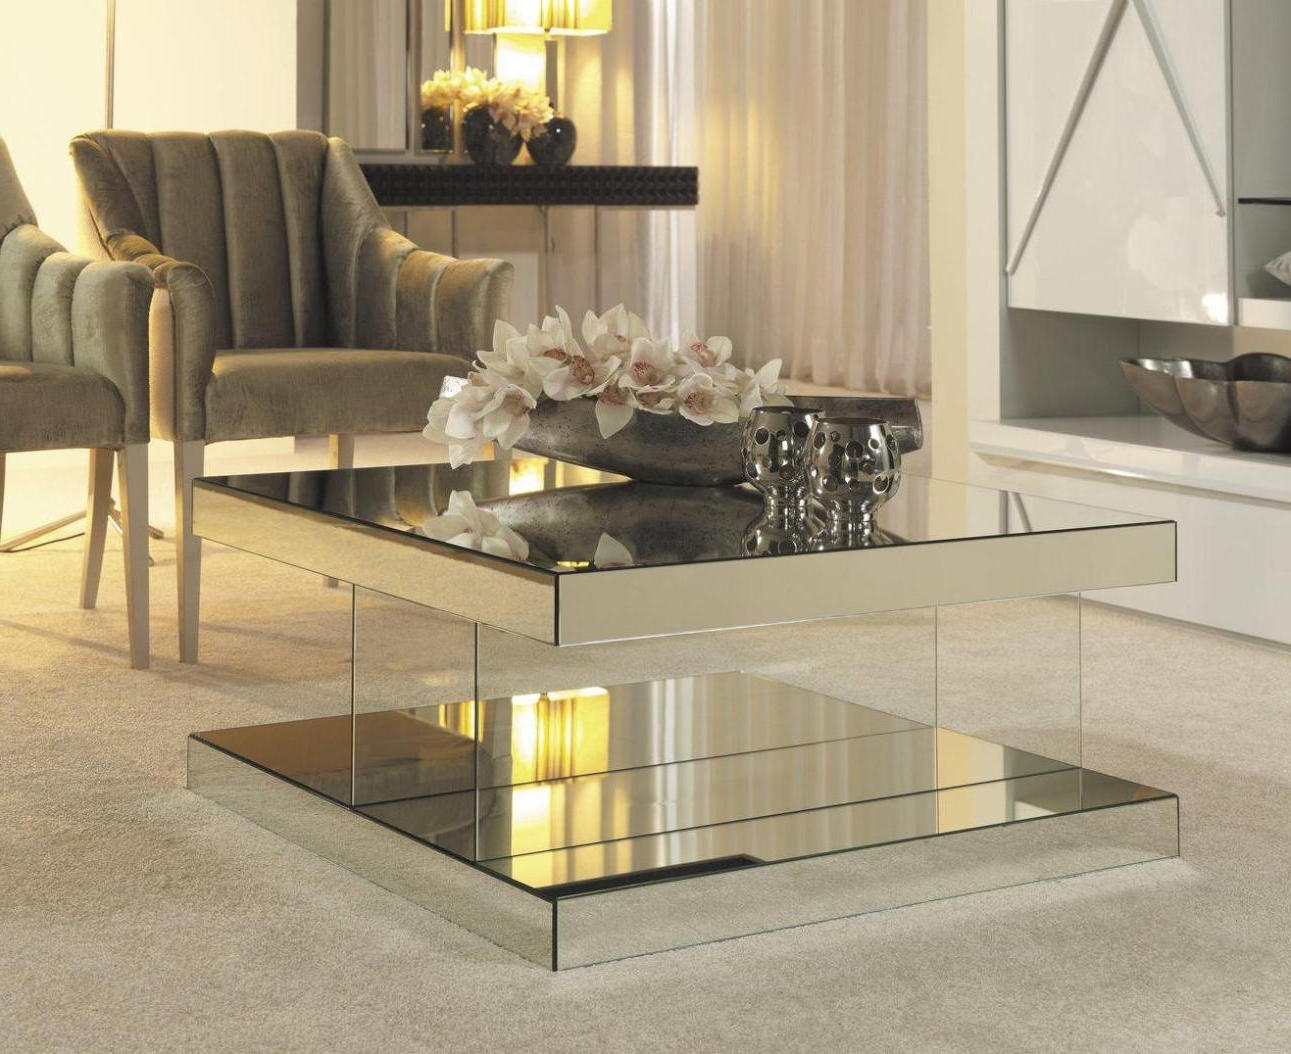 Mirrored Coffee Table Tray | Roy Home Design